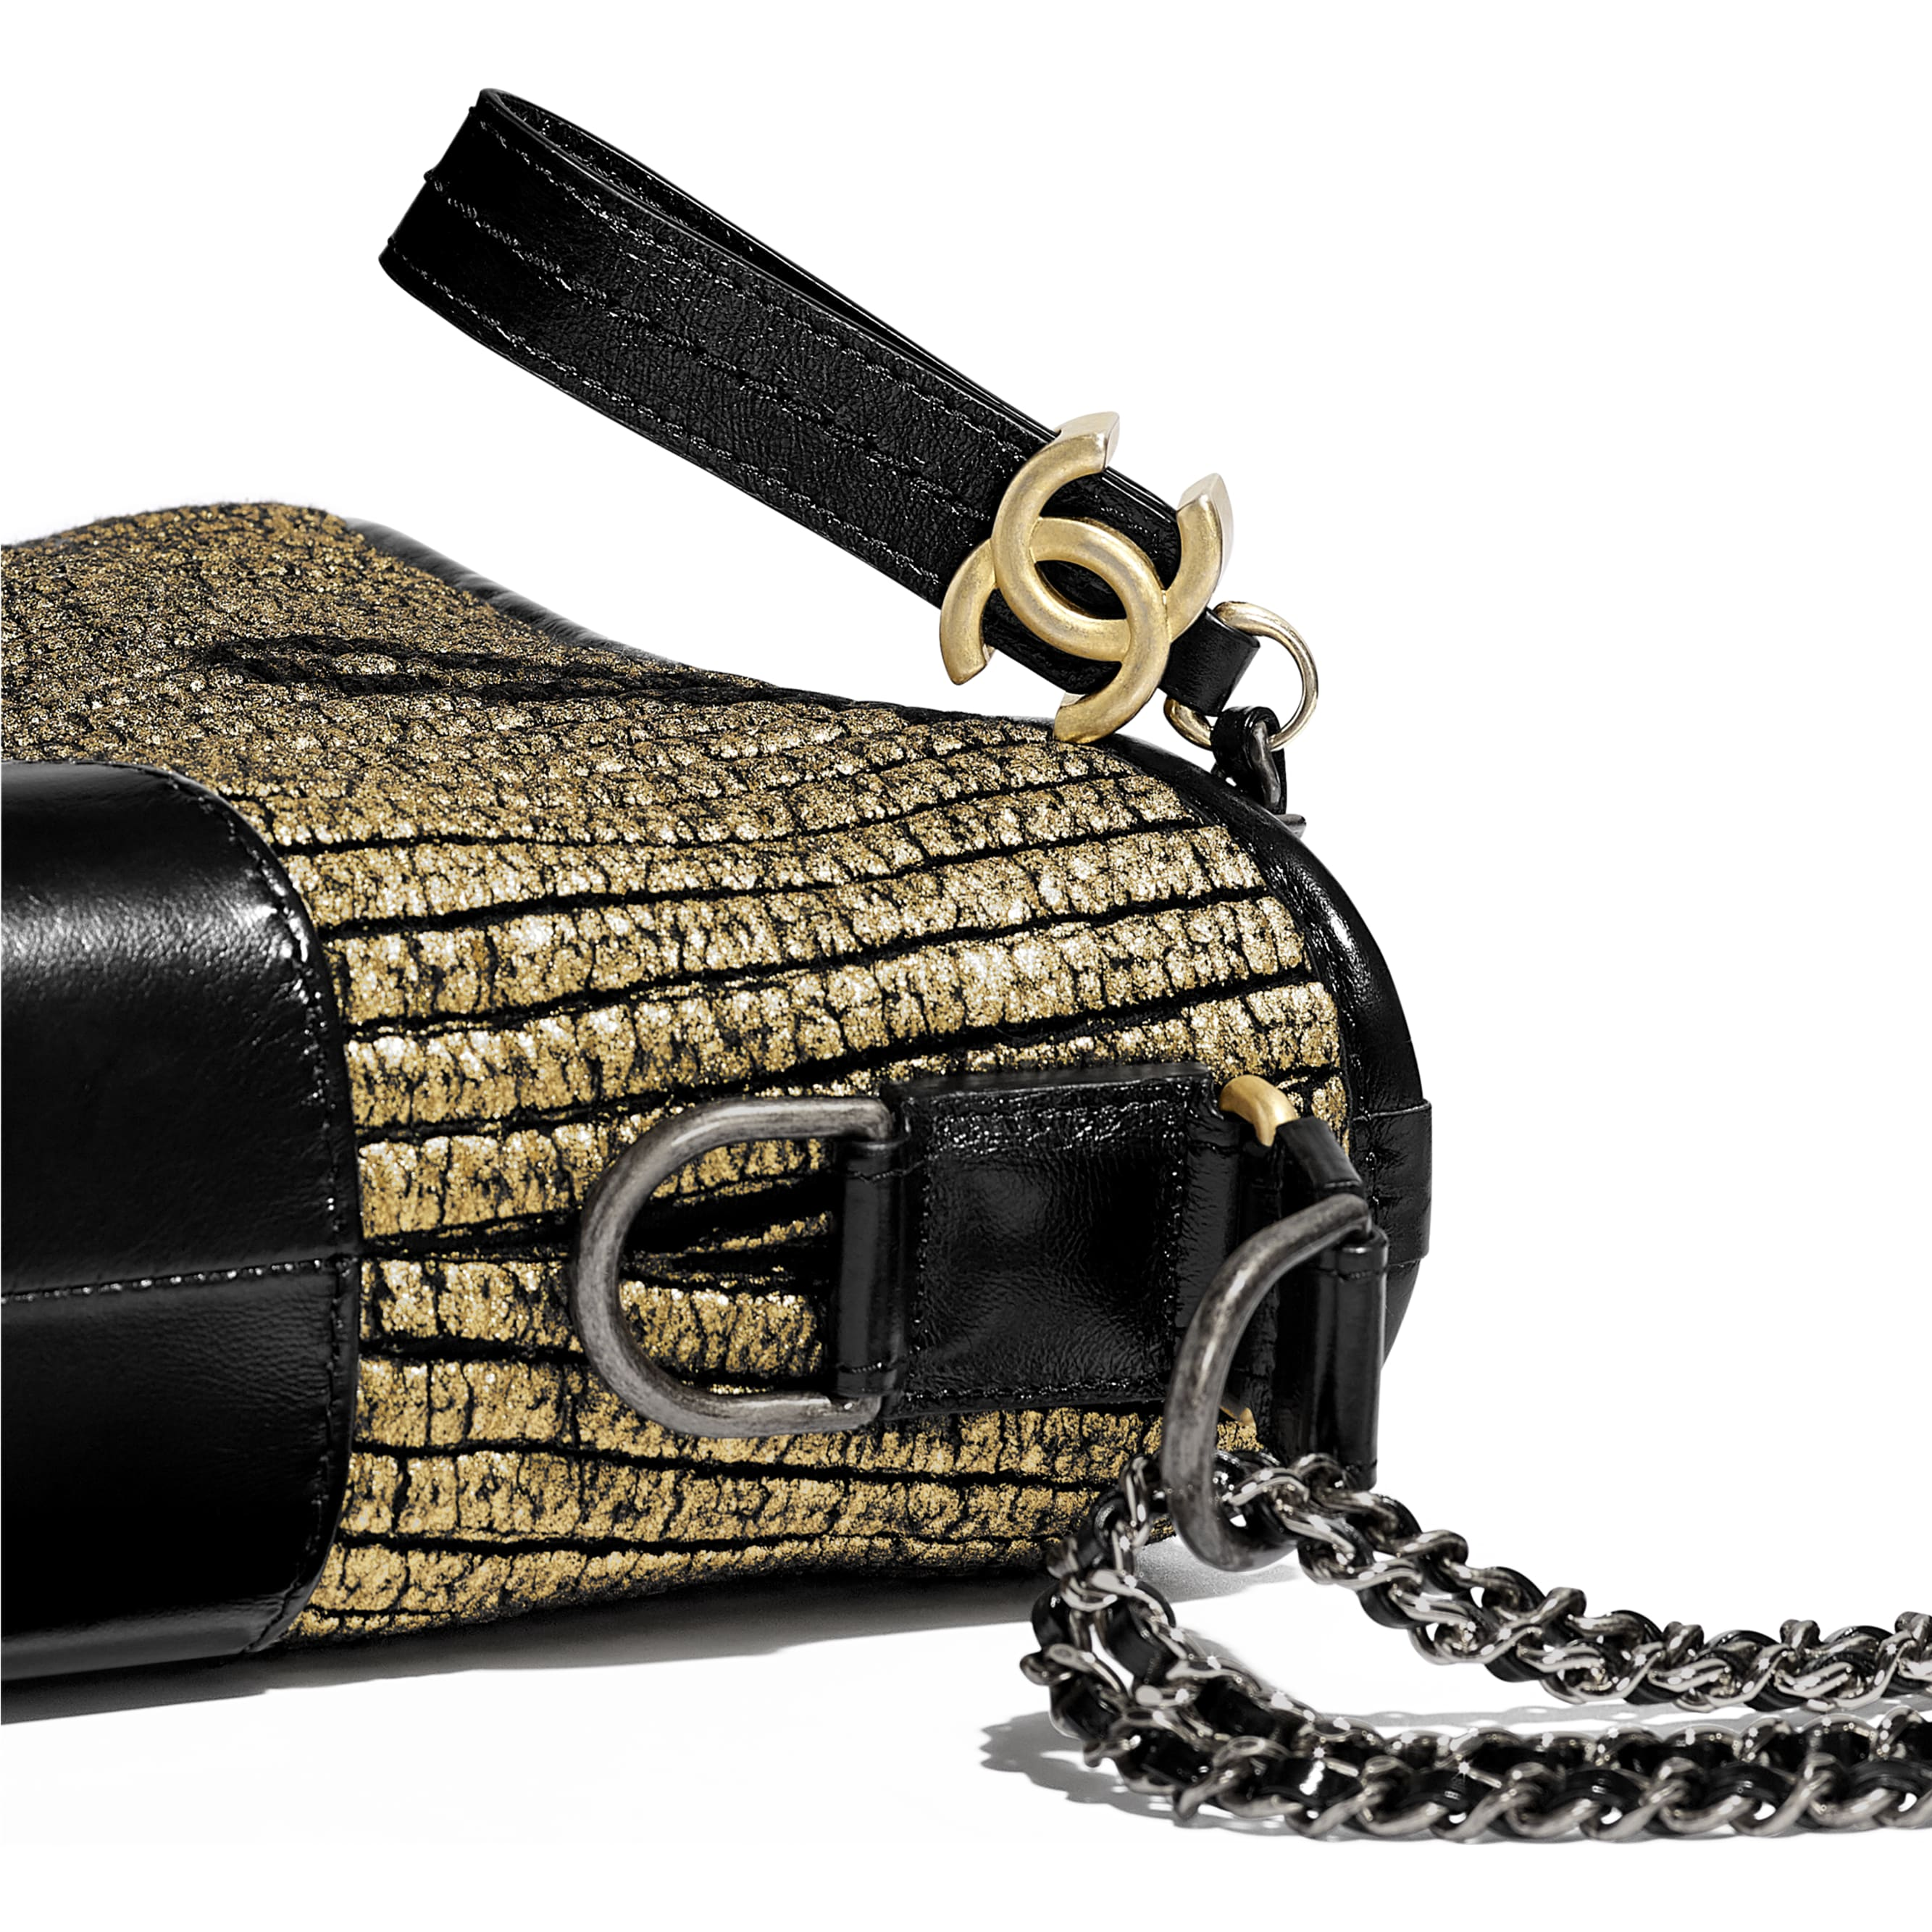 CHANEL'S GABRIELLE Small Hobo Bag - Gold & Black - Tweed, Calfskin, Gold-Tone & Silver-Tone Metal - CHANEL - Extra view - see standard sized version